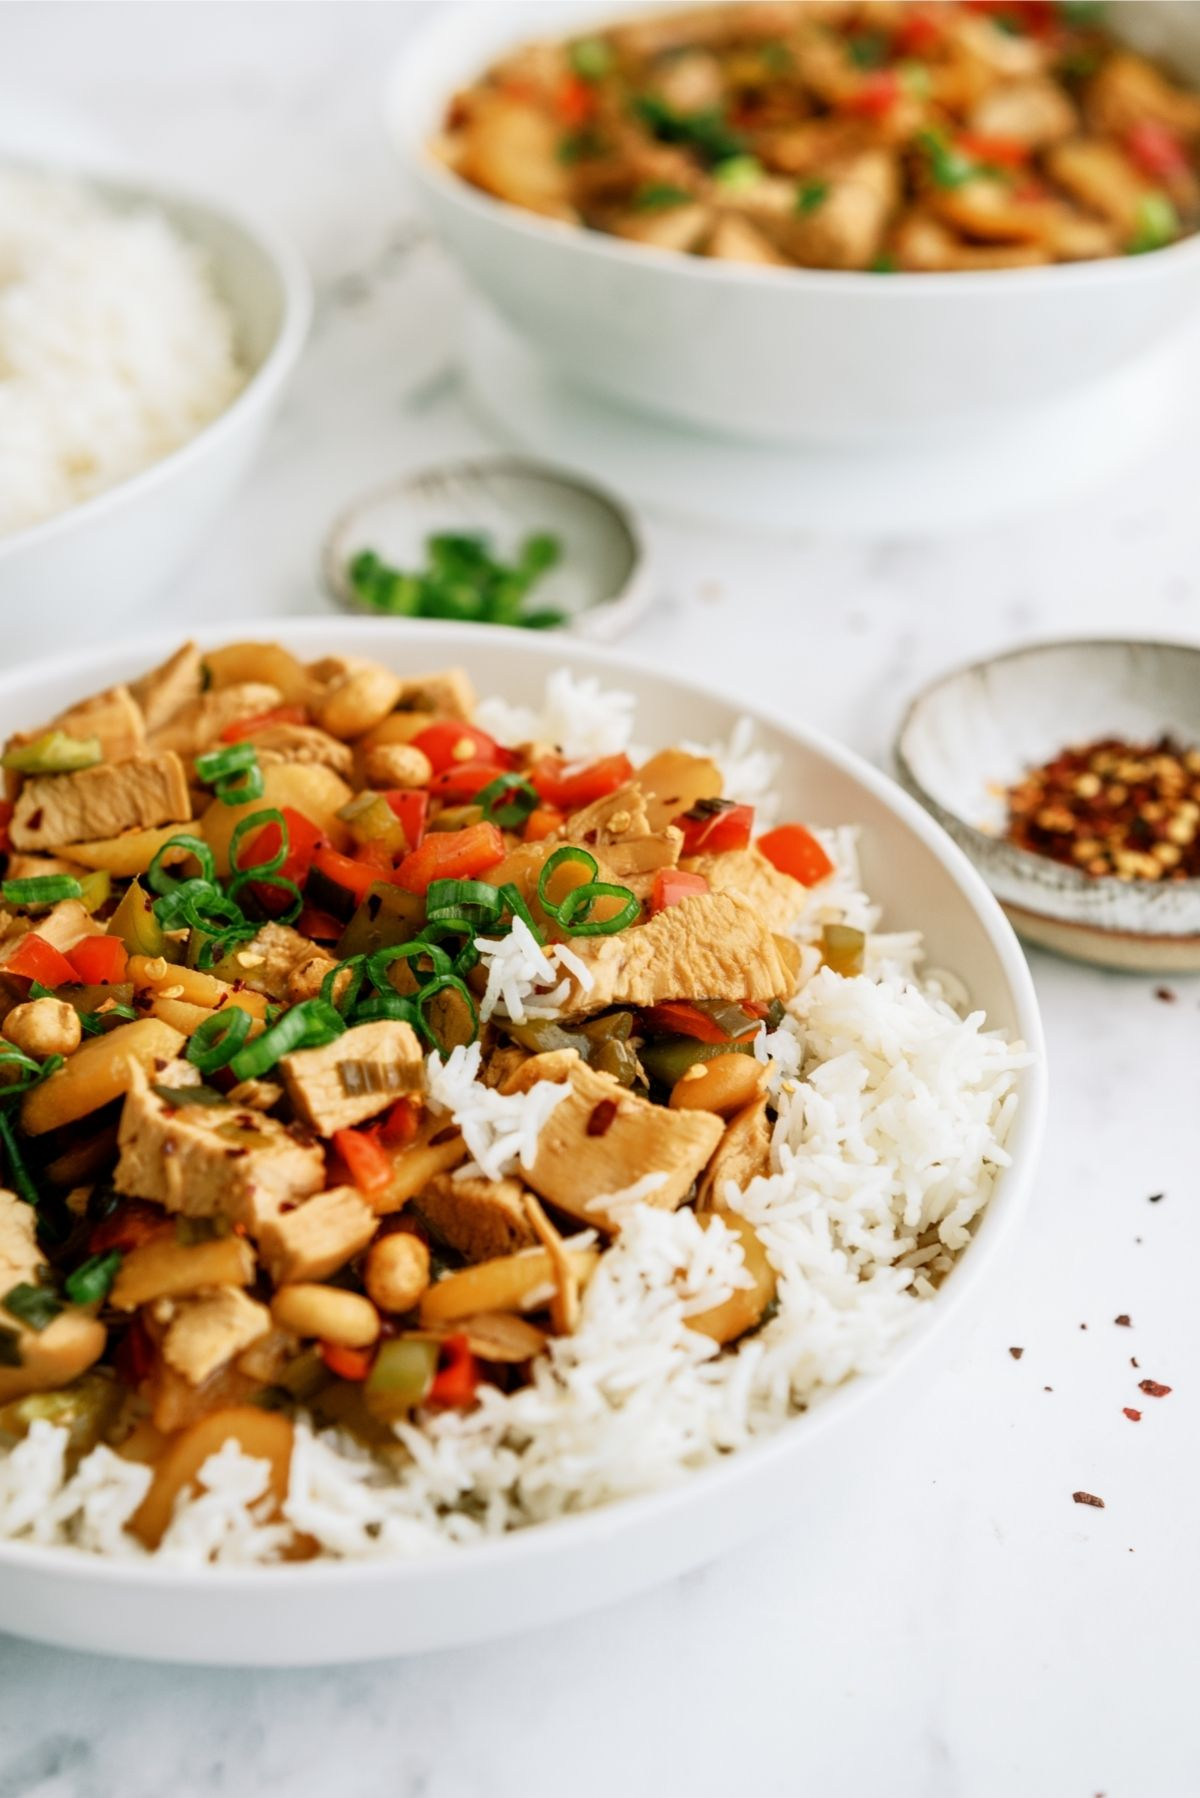 Slow Cooker Kung Pao Chicken served over rice in white bowl